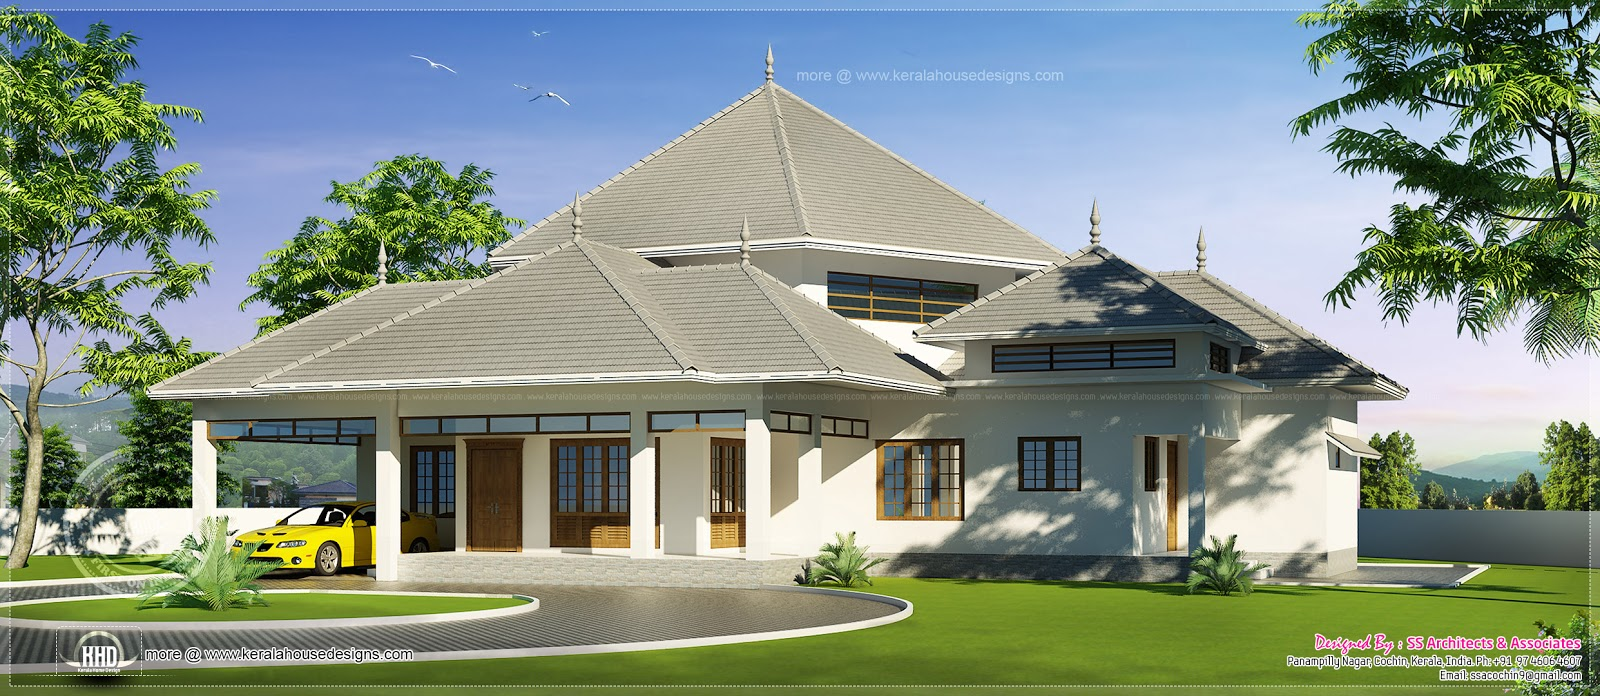 Kerala style modern roof house in 2600 kerala for 3000 sq ft house plans kerala style